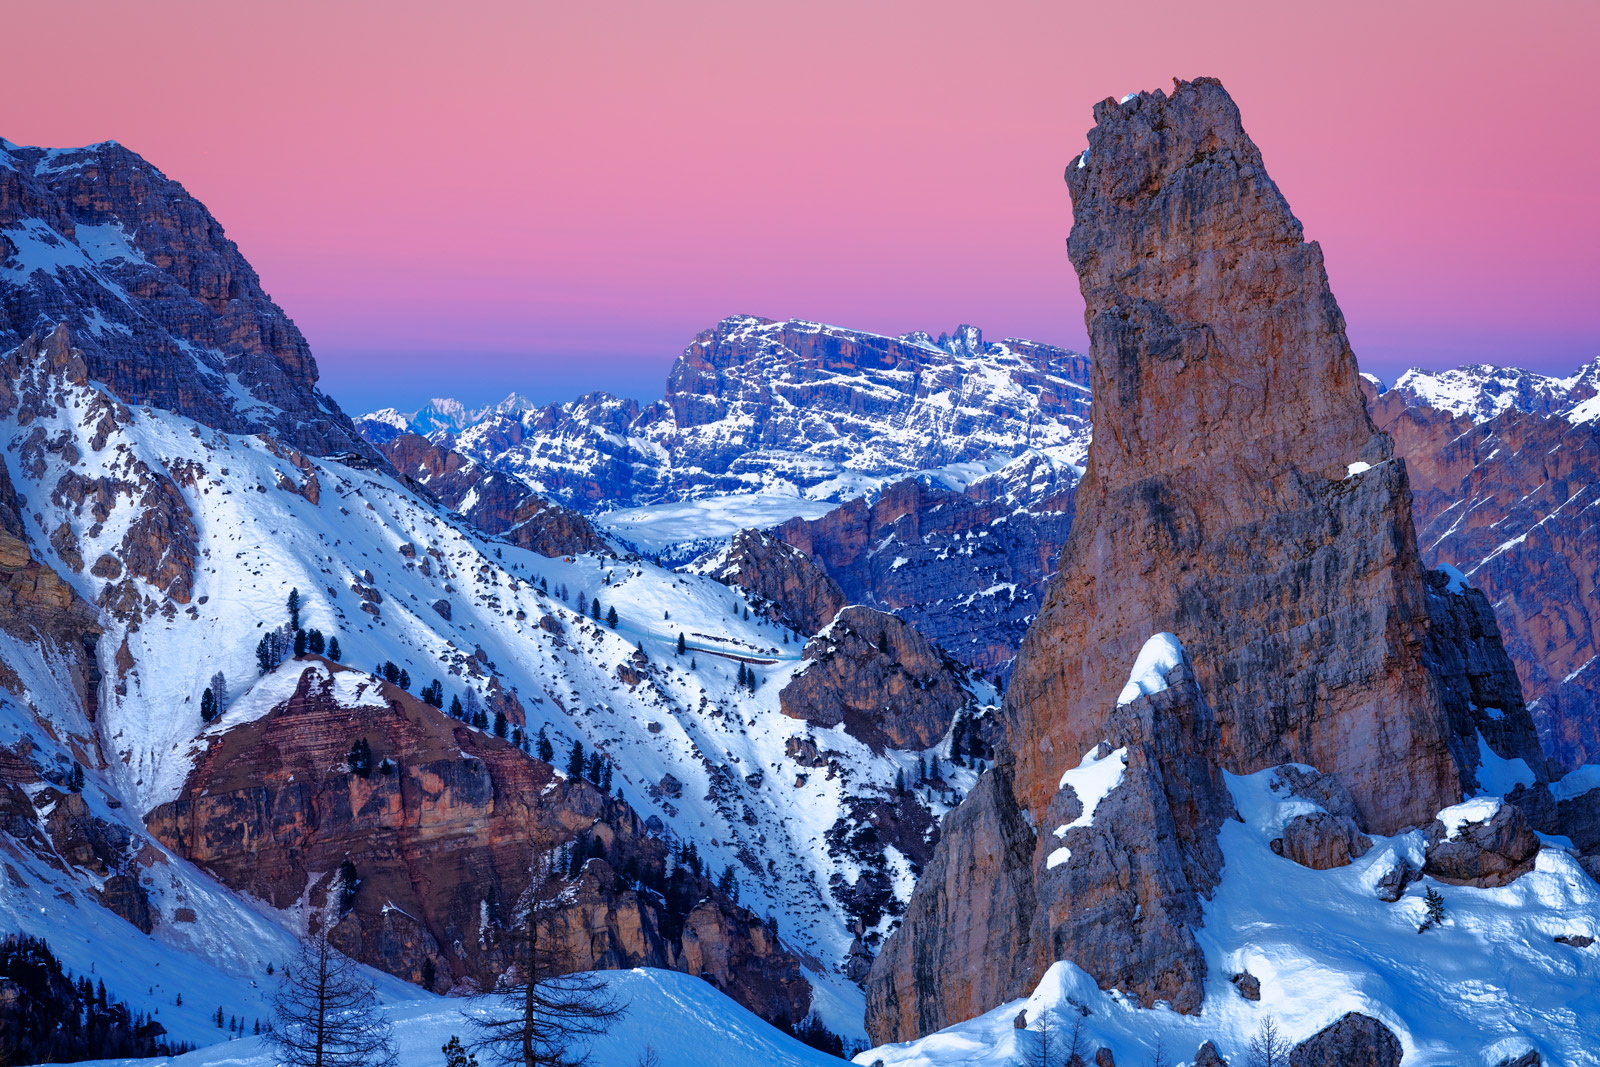 Italy, Cinque, Torri, Cinque Torri, Sunrise, Dolomite, Mountains, Snow, Winter, Snow, Venus Belt